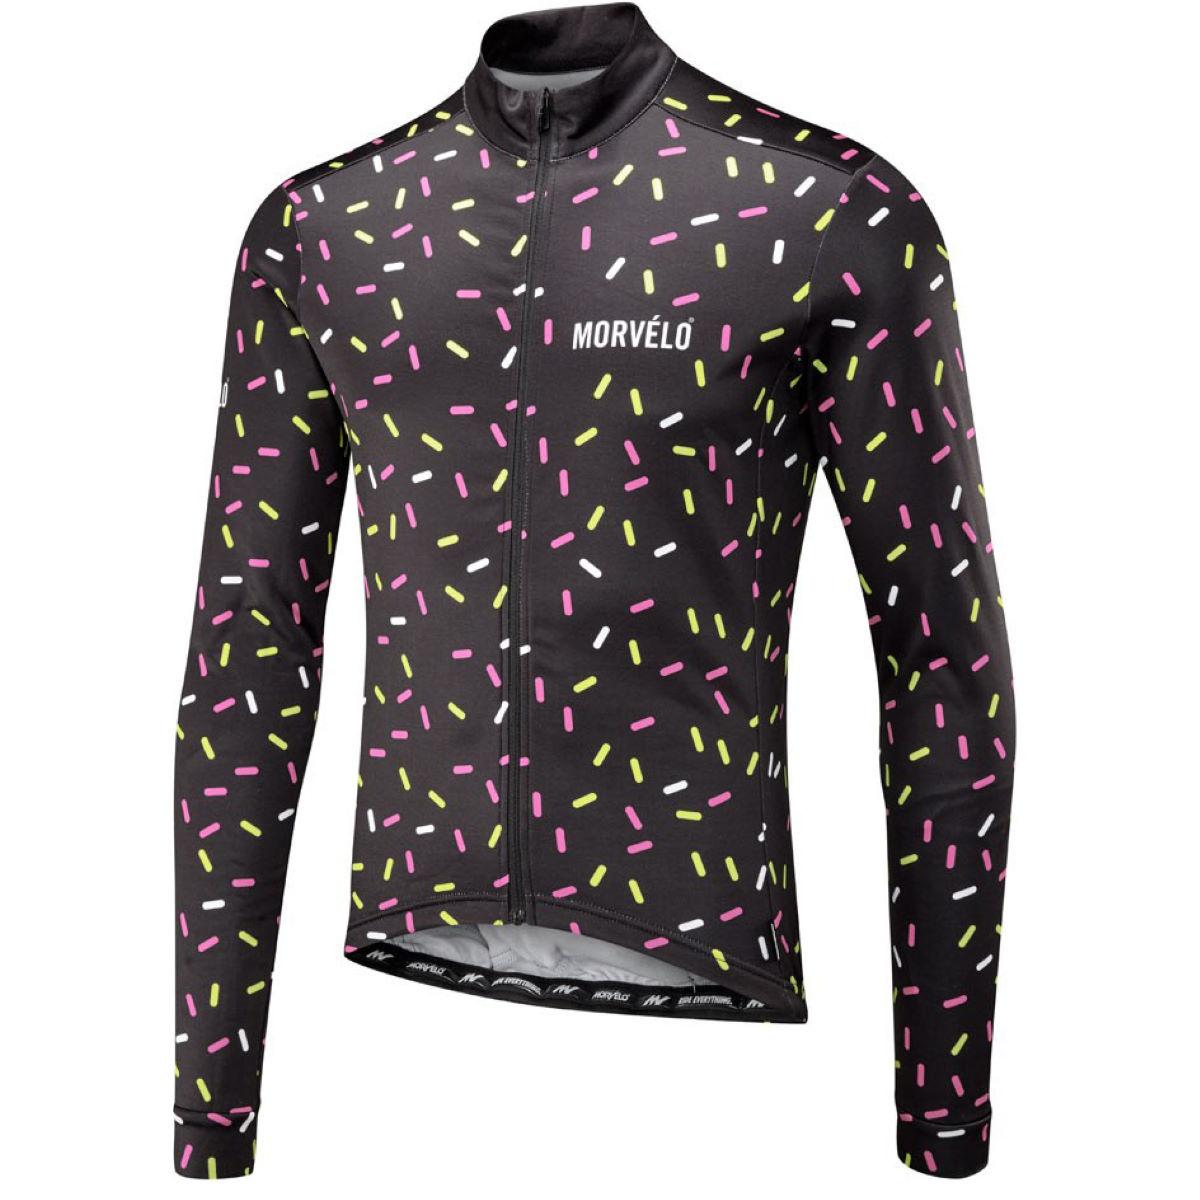 Morvelo Strands Thermoactive Long Sleeve Jersey - Maillots